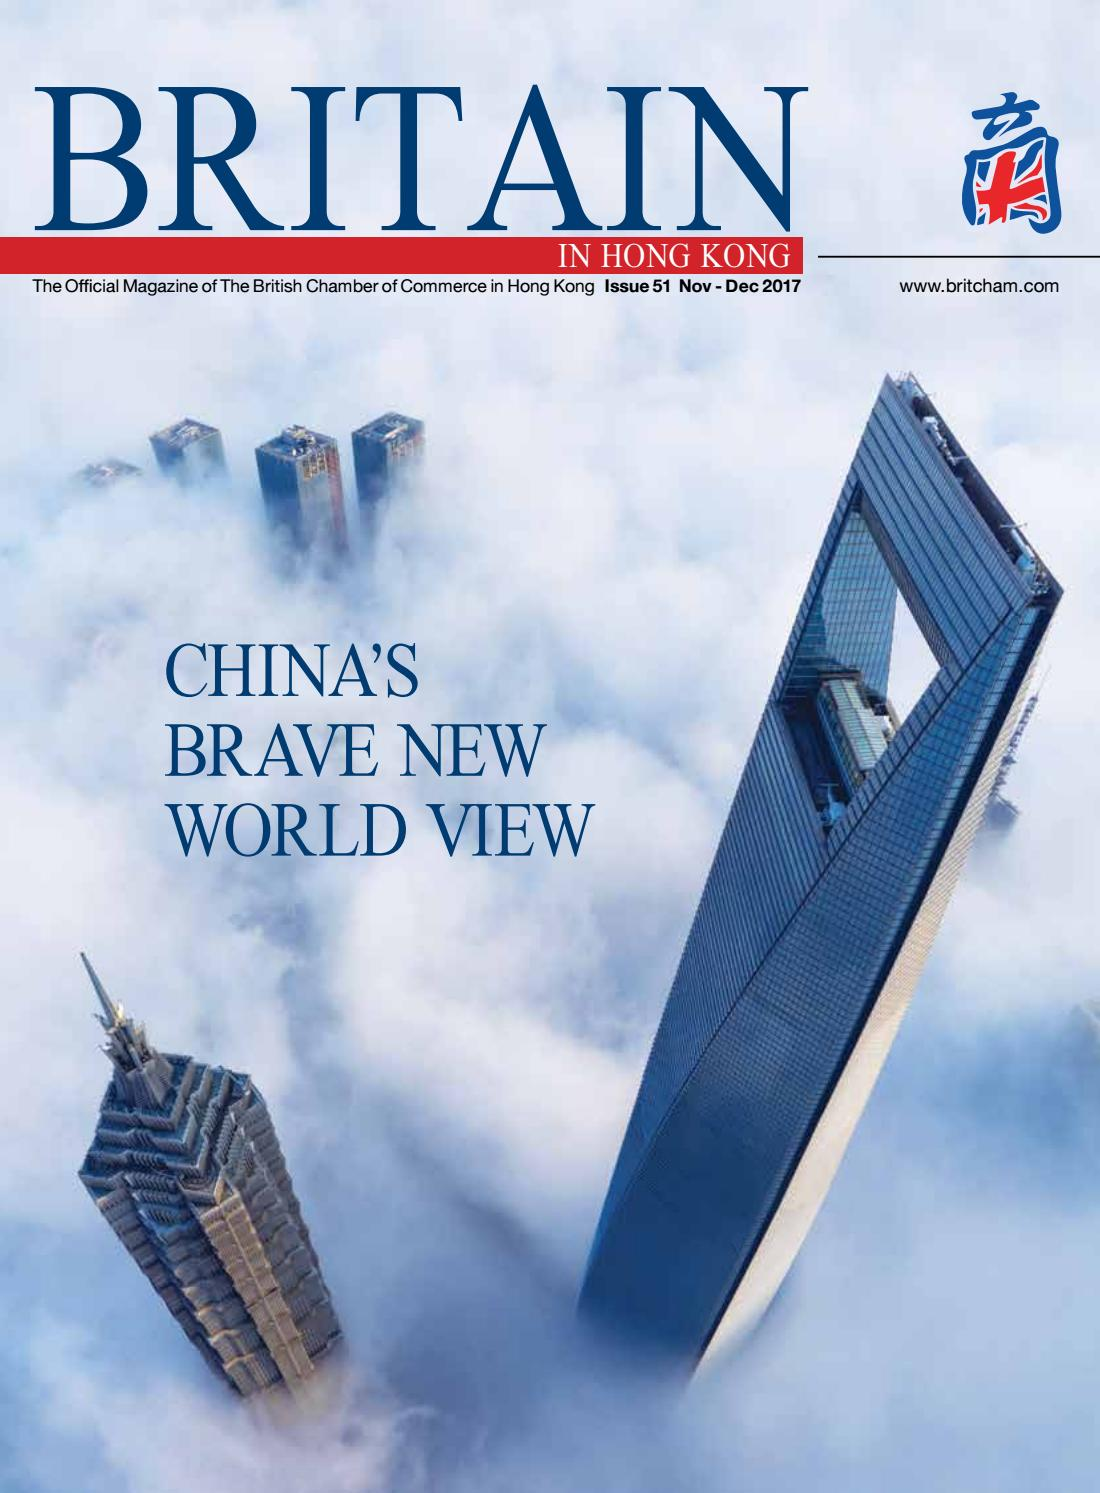 Britain in hong kong nov dec 2017 by the british chamber of commerce britain in hong kong nov dec 2017 by the british chamber of commerce issuu malvernweather